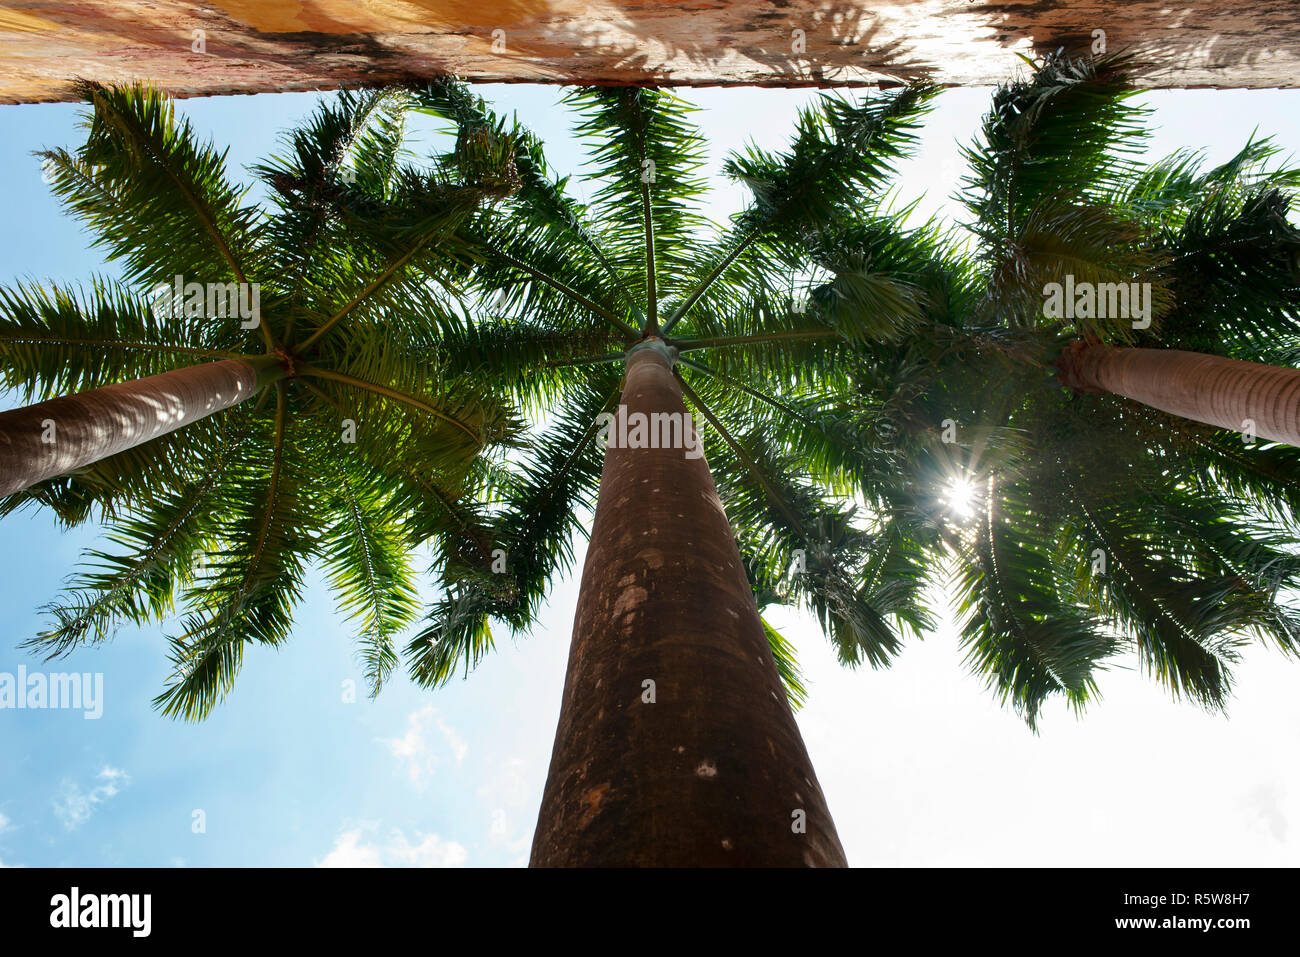 Royal palm trees from below angle. Tropical details in the old town of Cartagena de Indias, Colombia. Oct 2018 - Stock Image